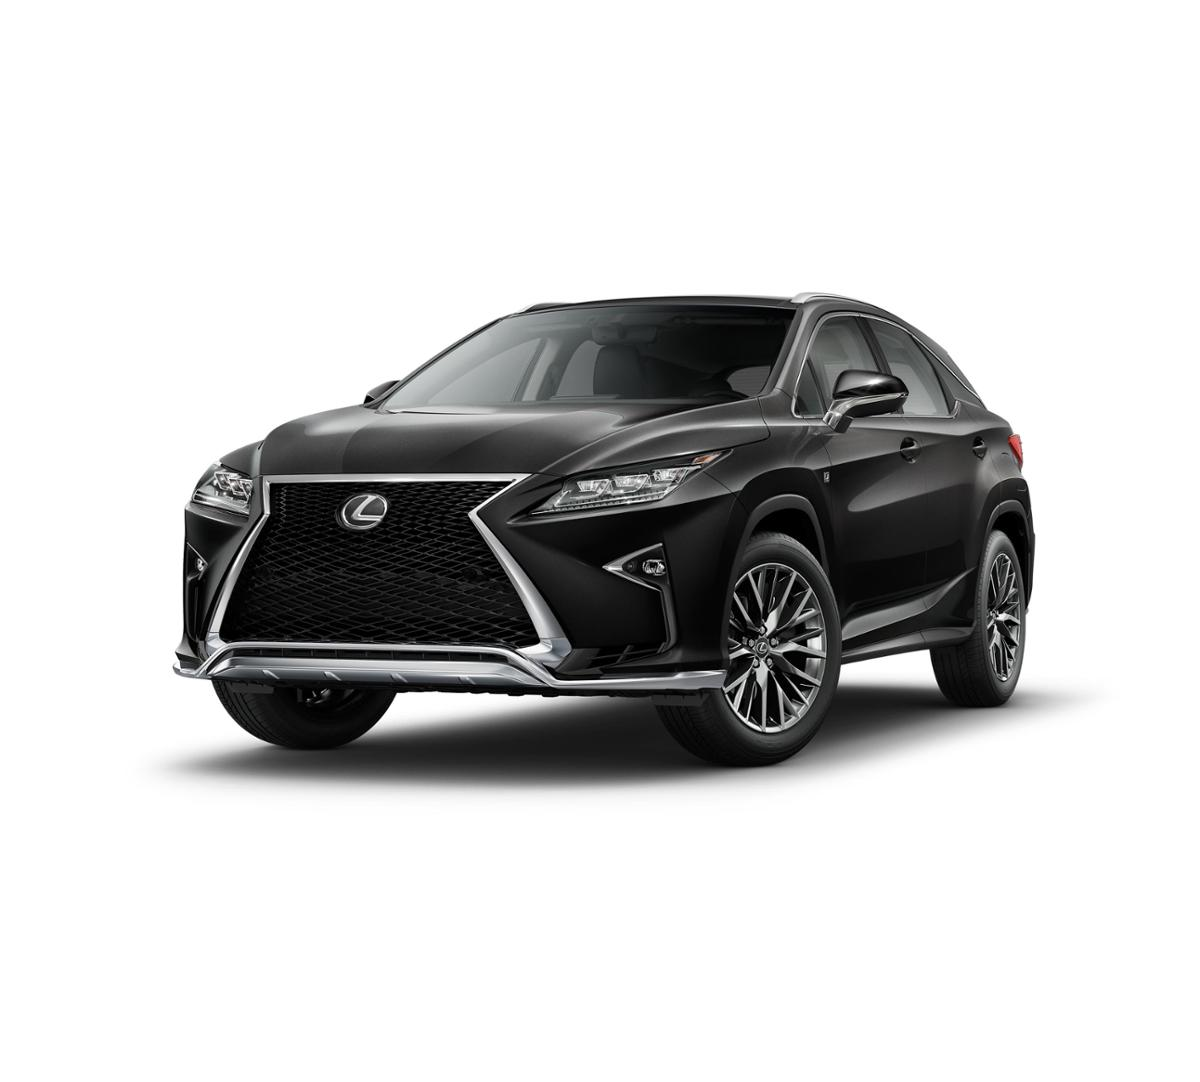 2017 lexus rx 350 f sport in caviar for sale in ca 2t2bzmcaxhc081208. Black Bedroom Furniture Sets. Home Design Ideas